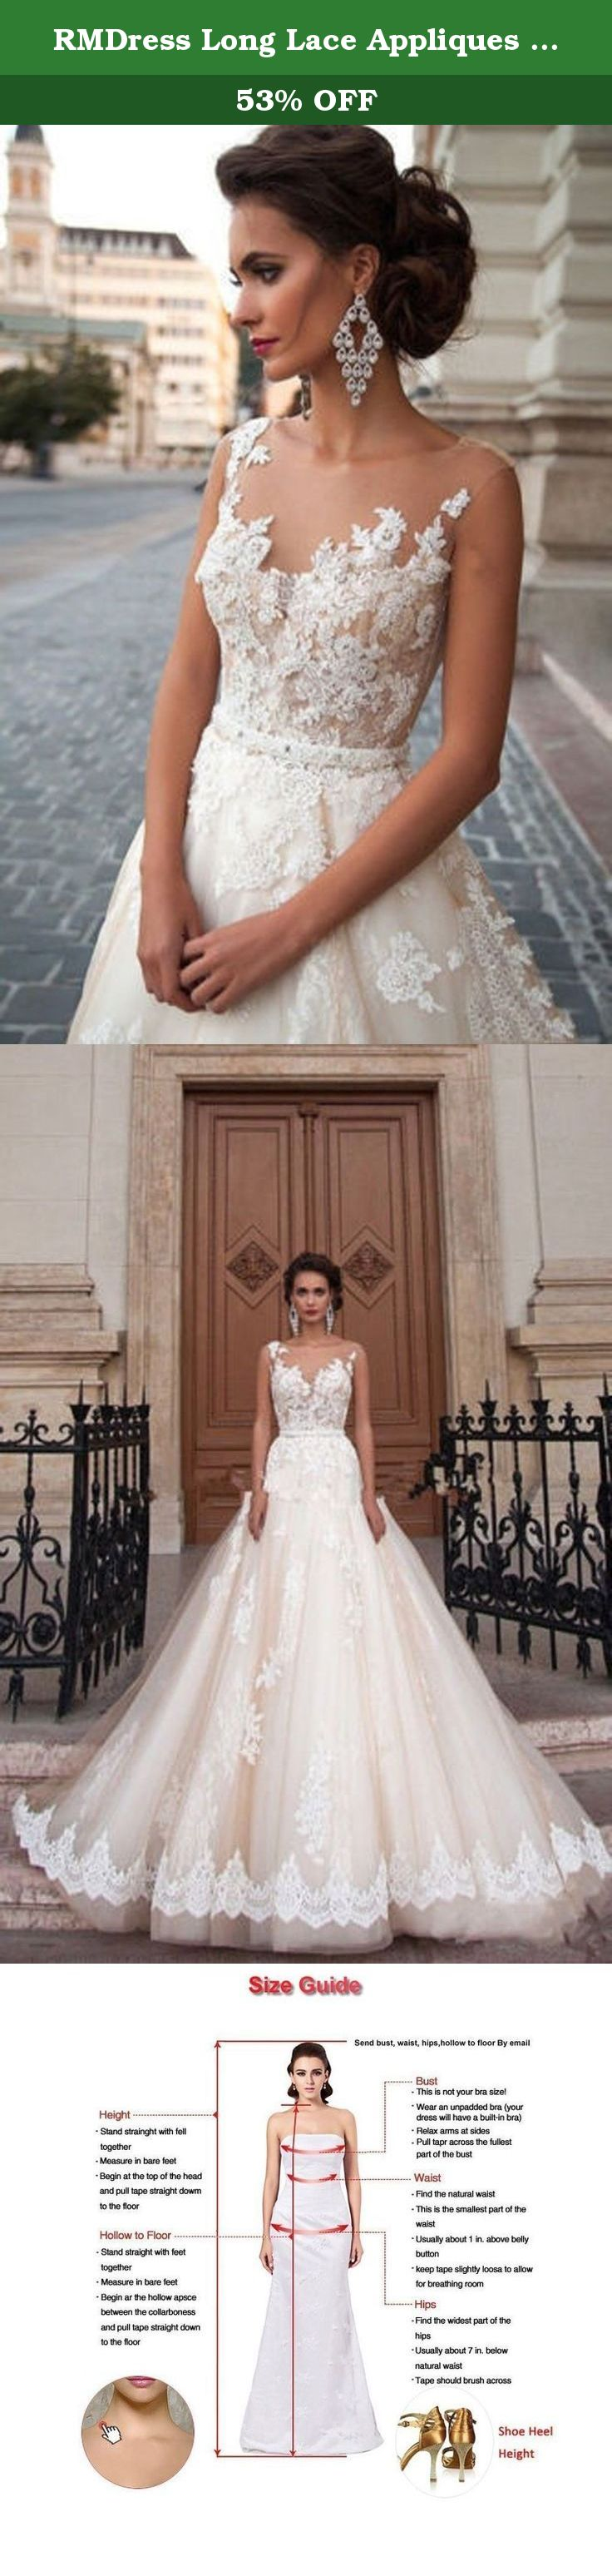 Rmdress long lace appliques bridal wedding ball gown dress bride